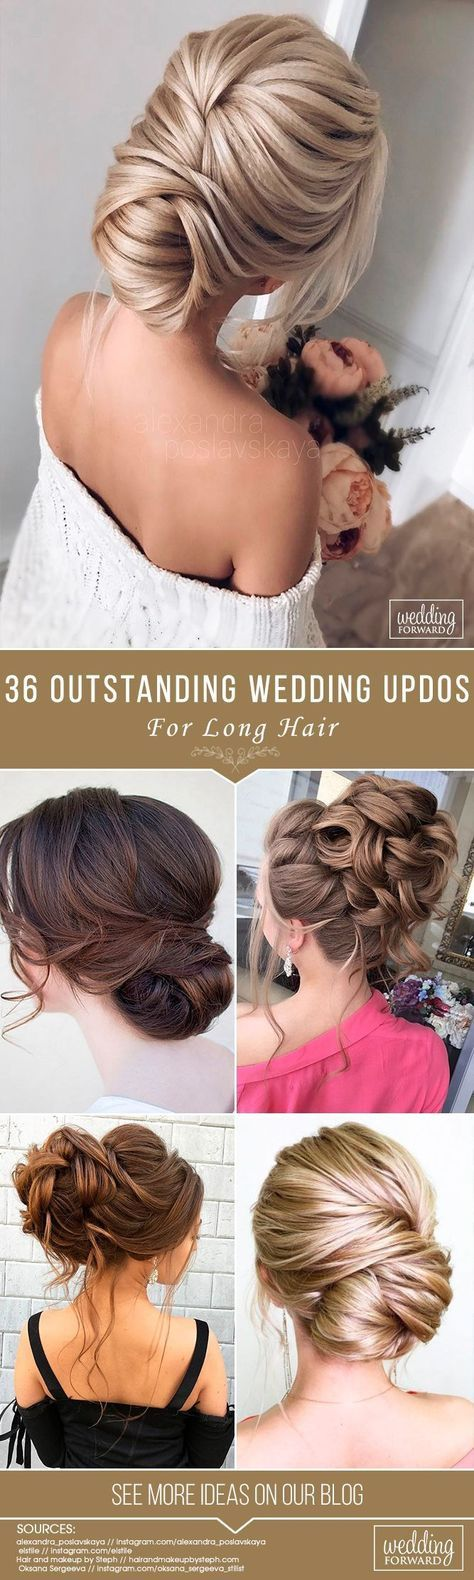 36 Most Outstanding Wedding Updos For Long Hair ❤️ We have collected the most outstanding wedding updos for long hair. Opt the best variant for your inspiration! Be trendy on your wedding! See more: